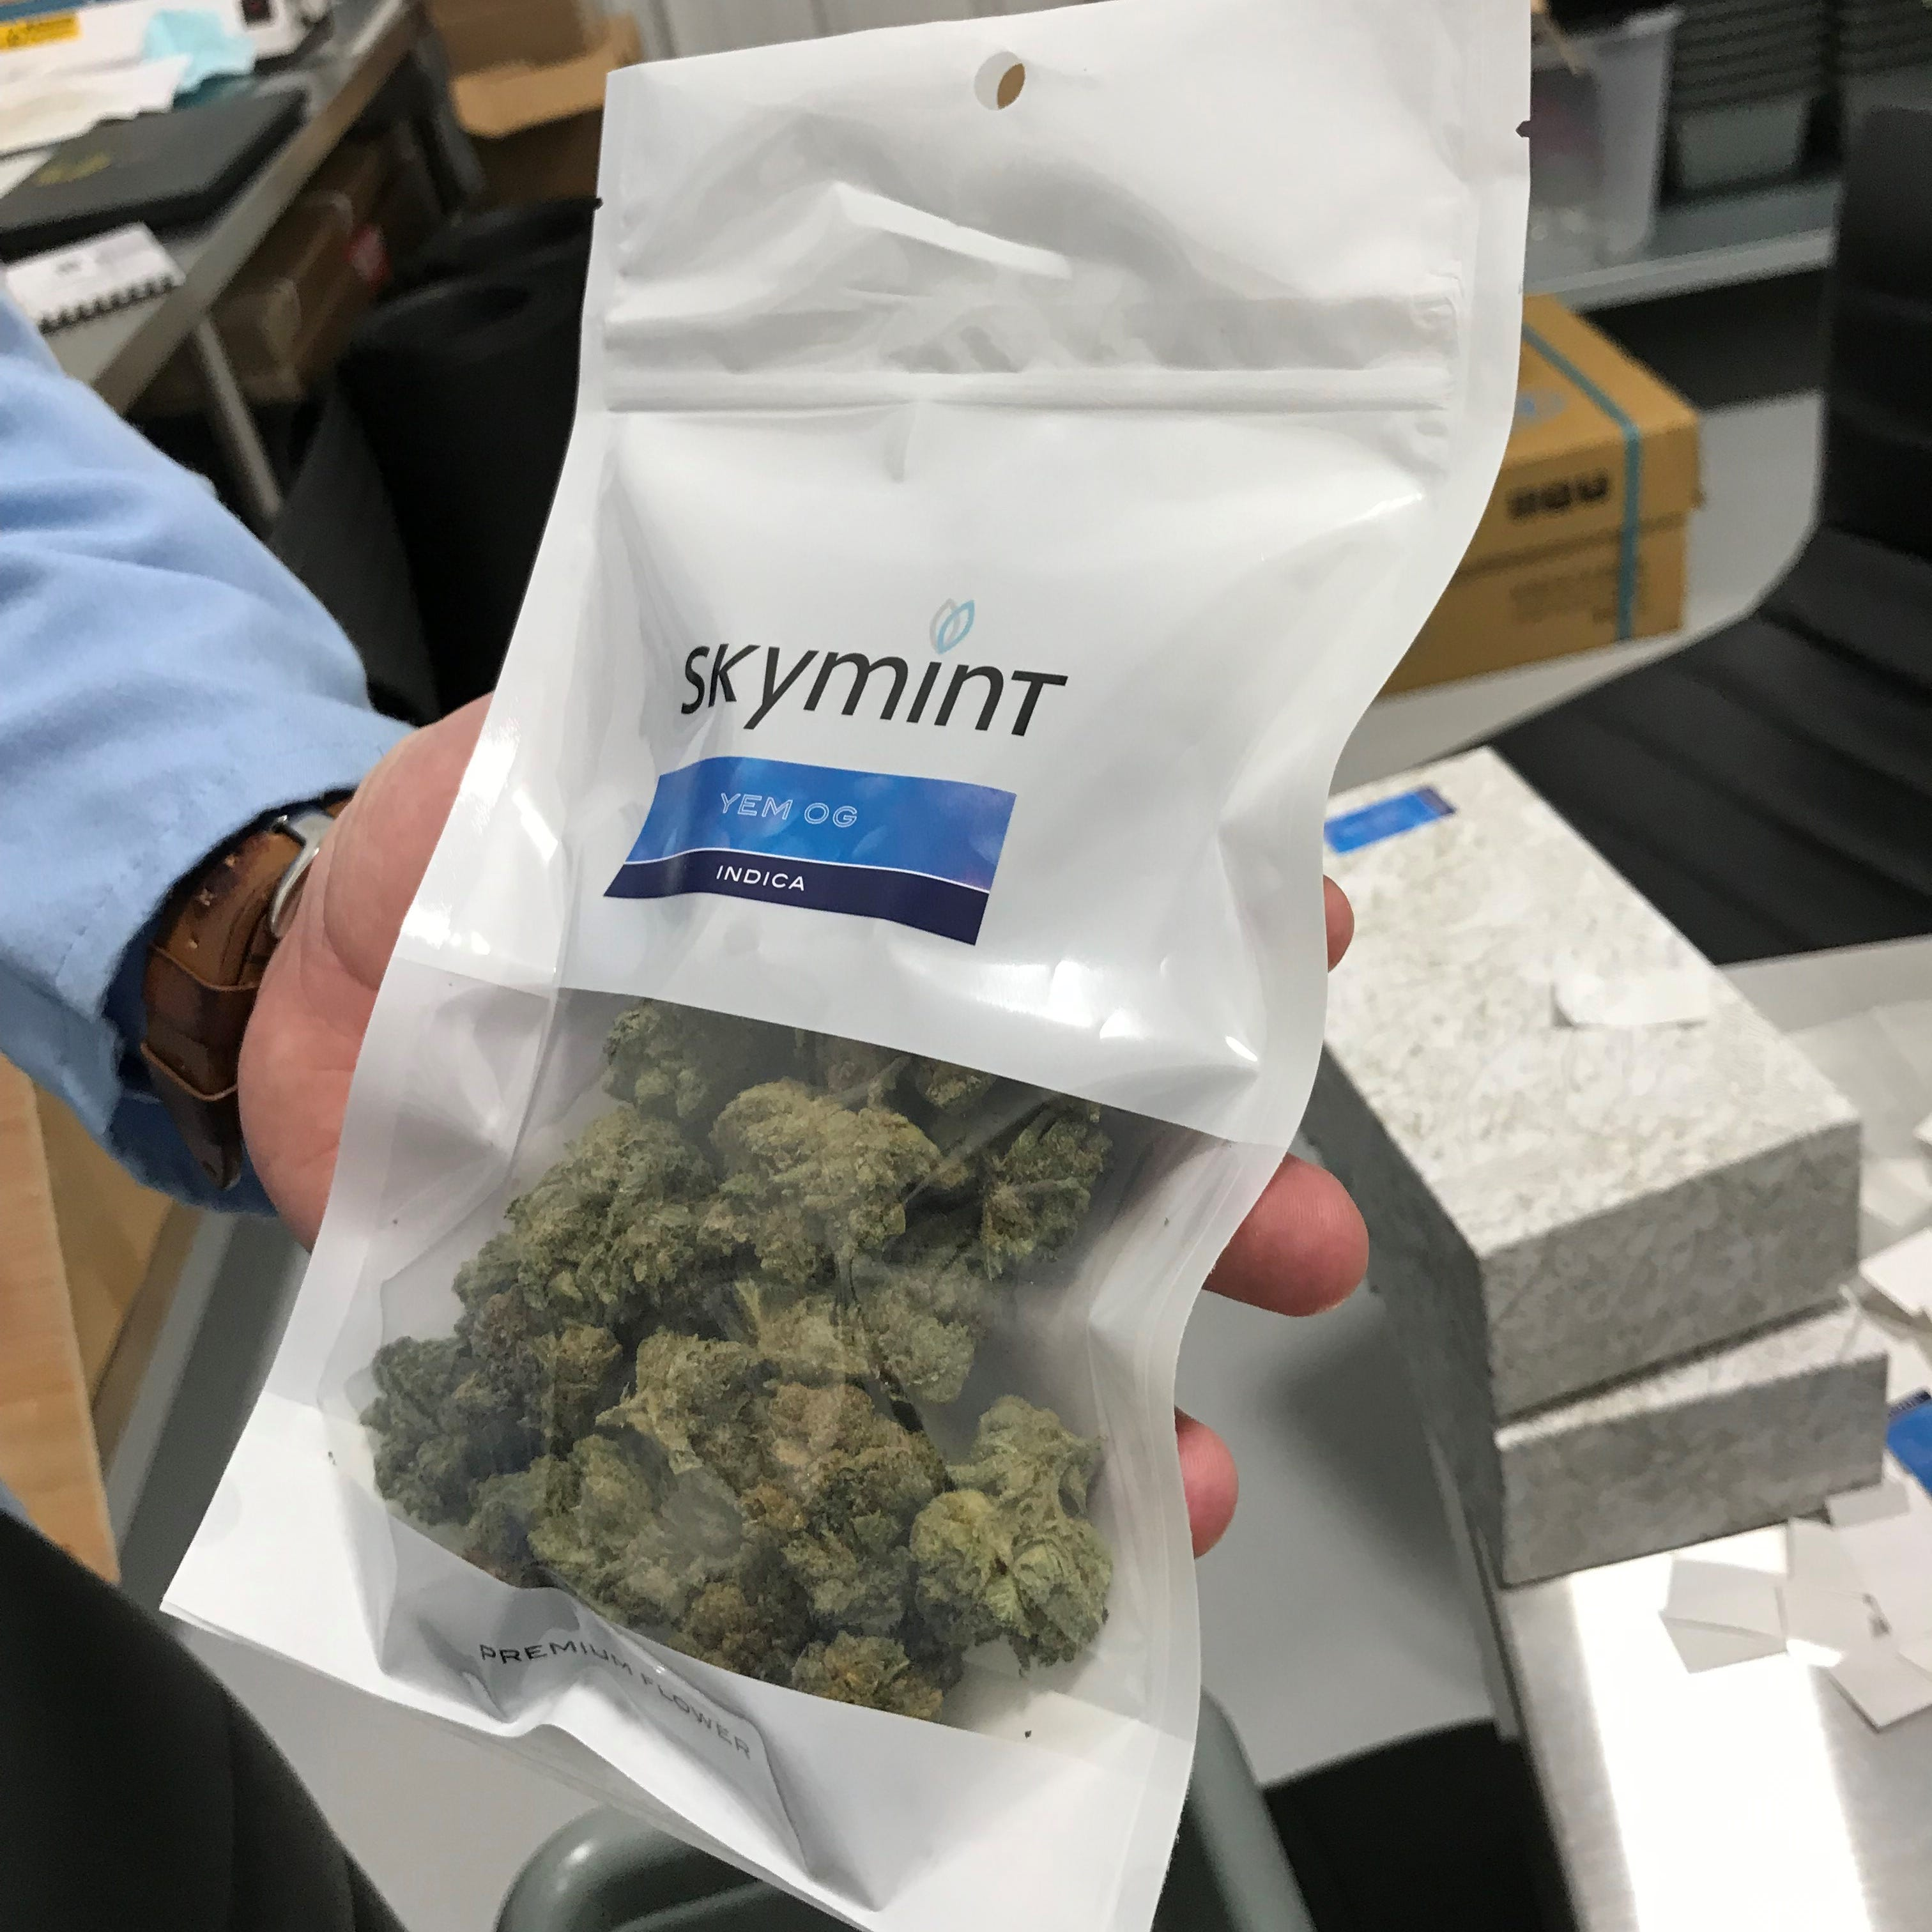 Green Peak Innovations is a facility in Windsor Township, Michigan that grows several different strains of marijuana. It plans to open a chain of Skymint dispensaries in the state.